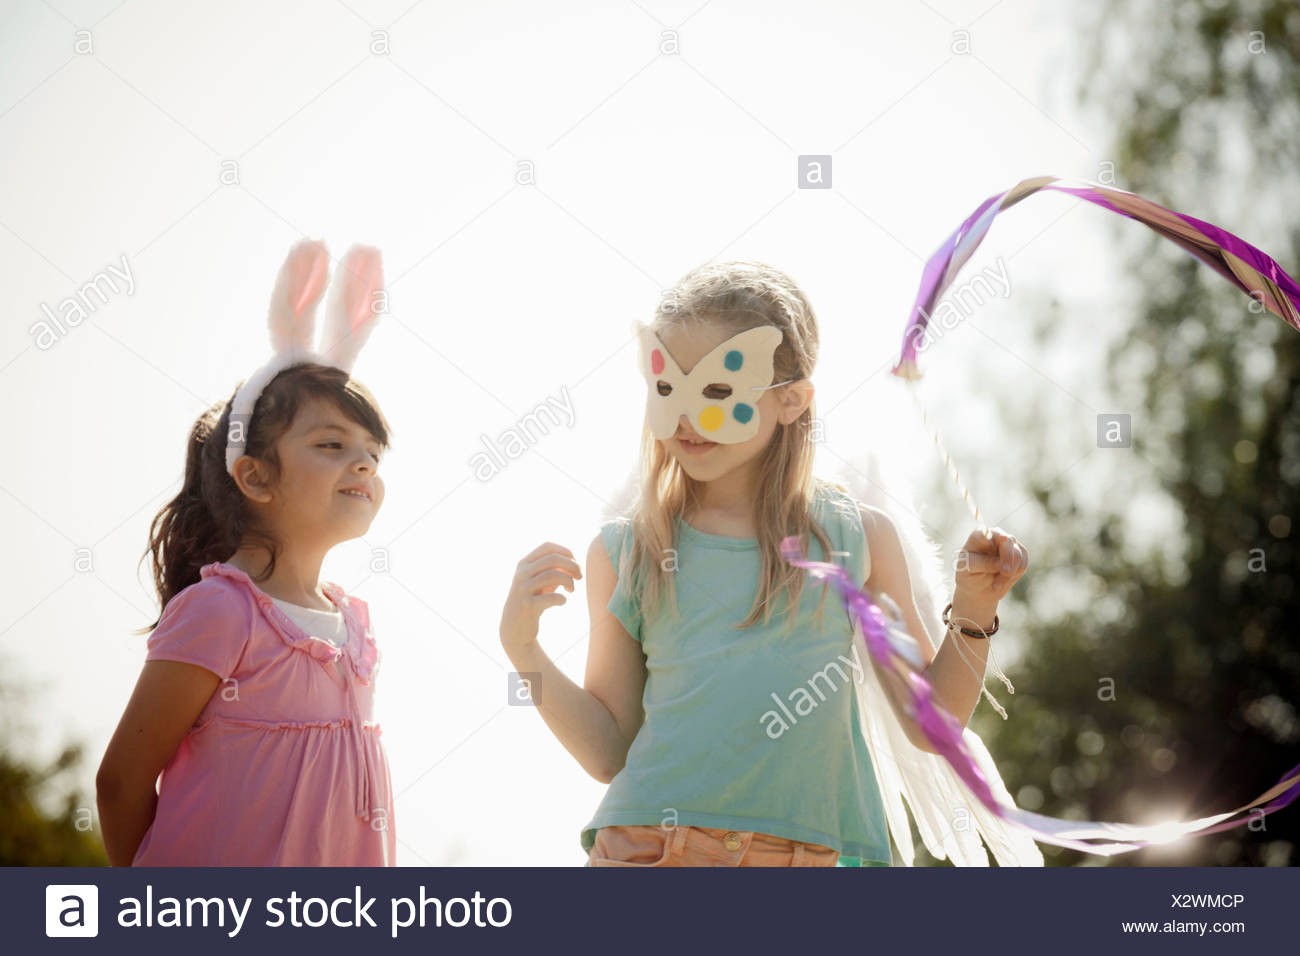 Children in costume play acting Stock Photo